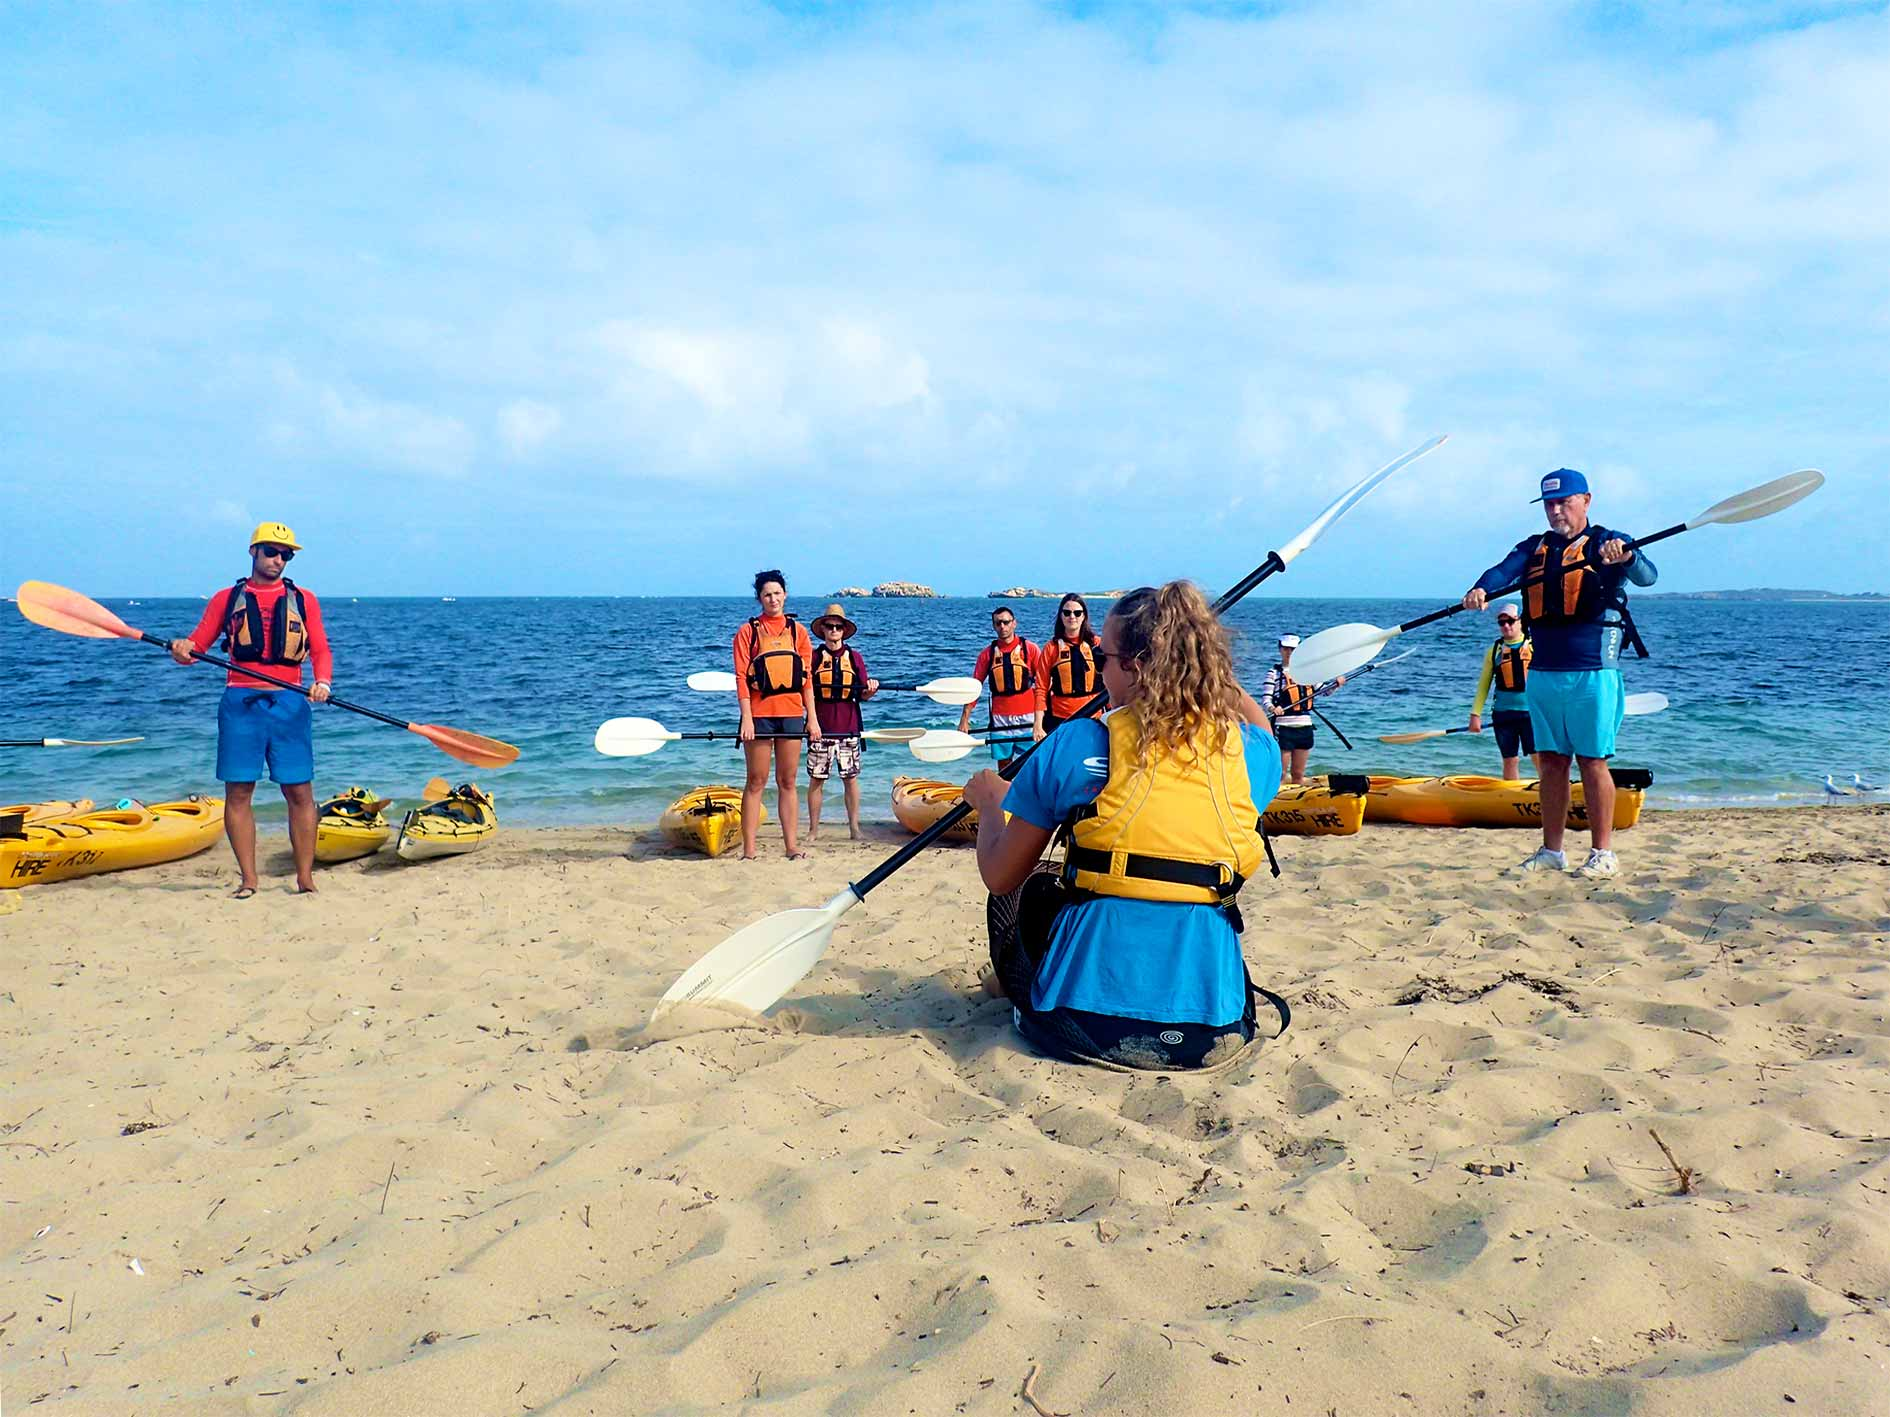 sea kayak courses, sea kayak training, Australian Canoeing, sea kayak skills, Capricorn Seakayaking, sea kayak Perth, sea kayak tour, Penguin Island, sea instructor course, sea kayak guide course